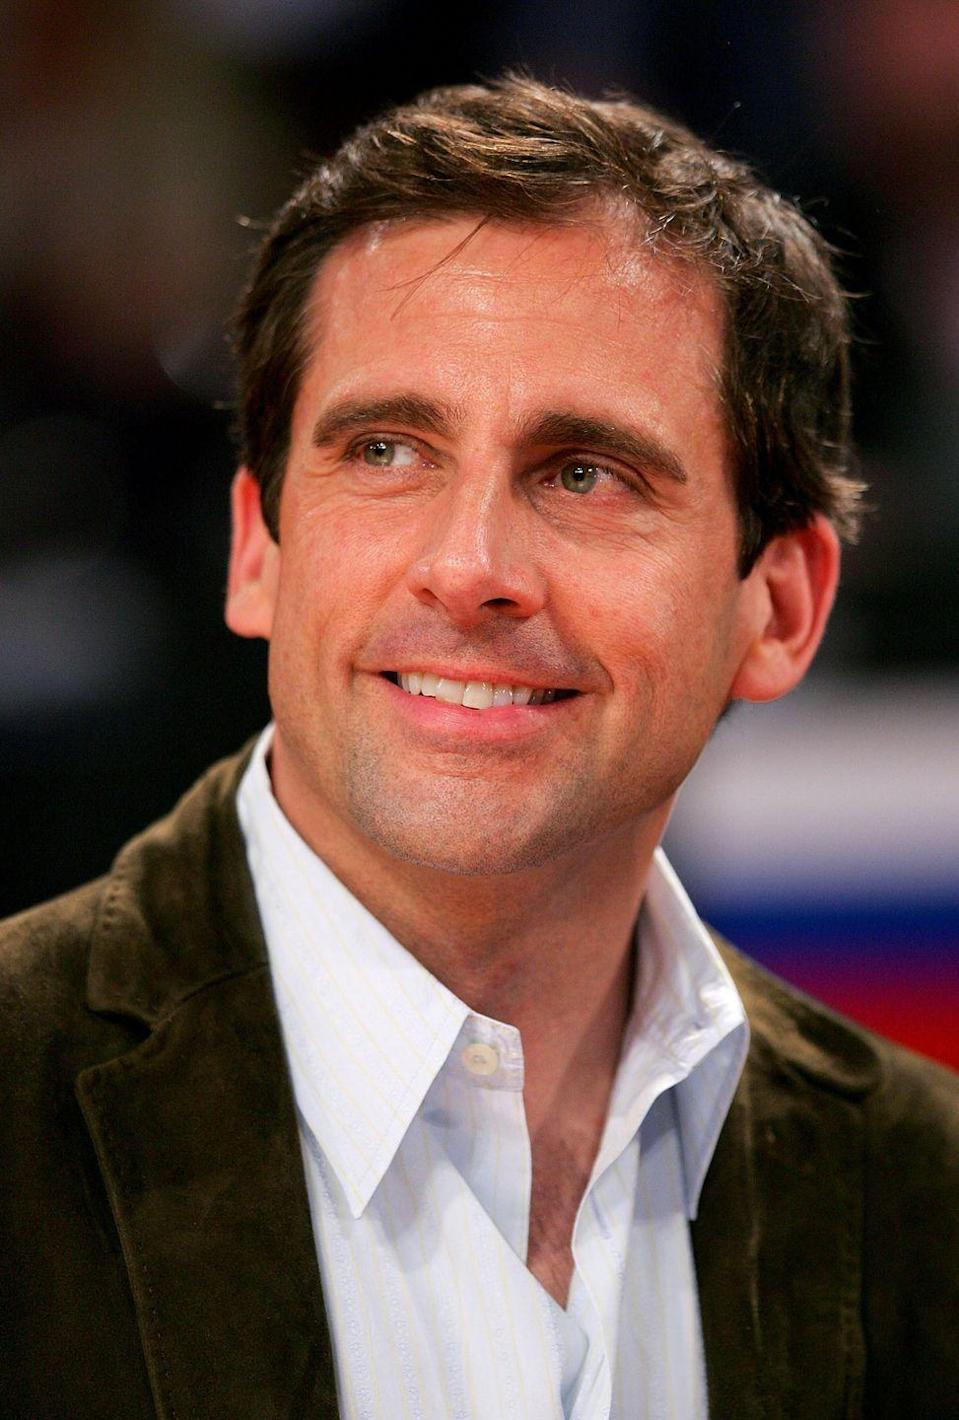 <p>If you've seen <em>The 40-Year-Old Virgin, </em>you know Carell is working with a lot of chest hair, but he typically opts for a buttoned-up look.</p>